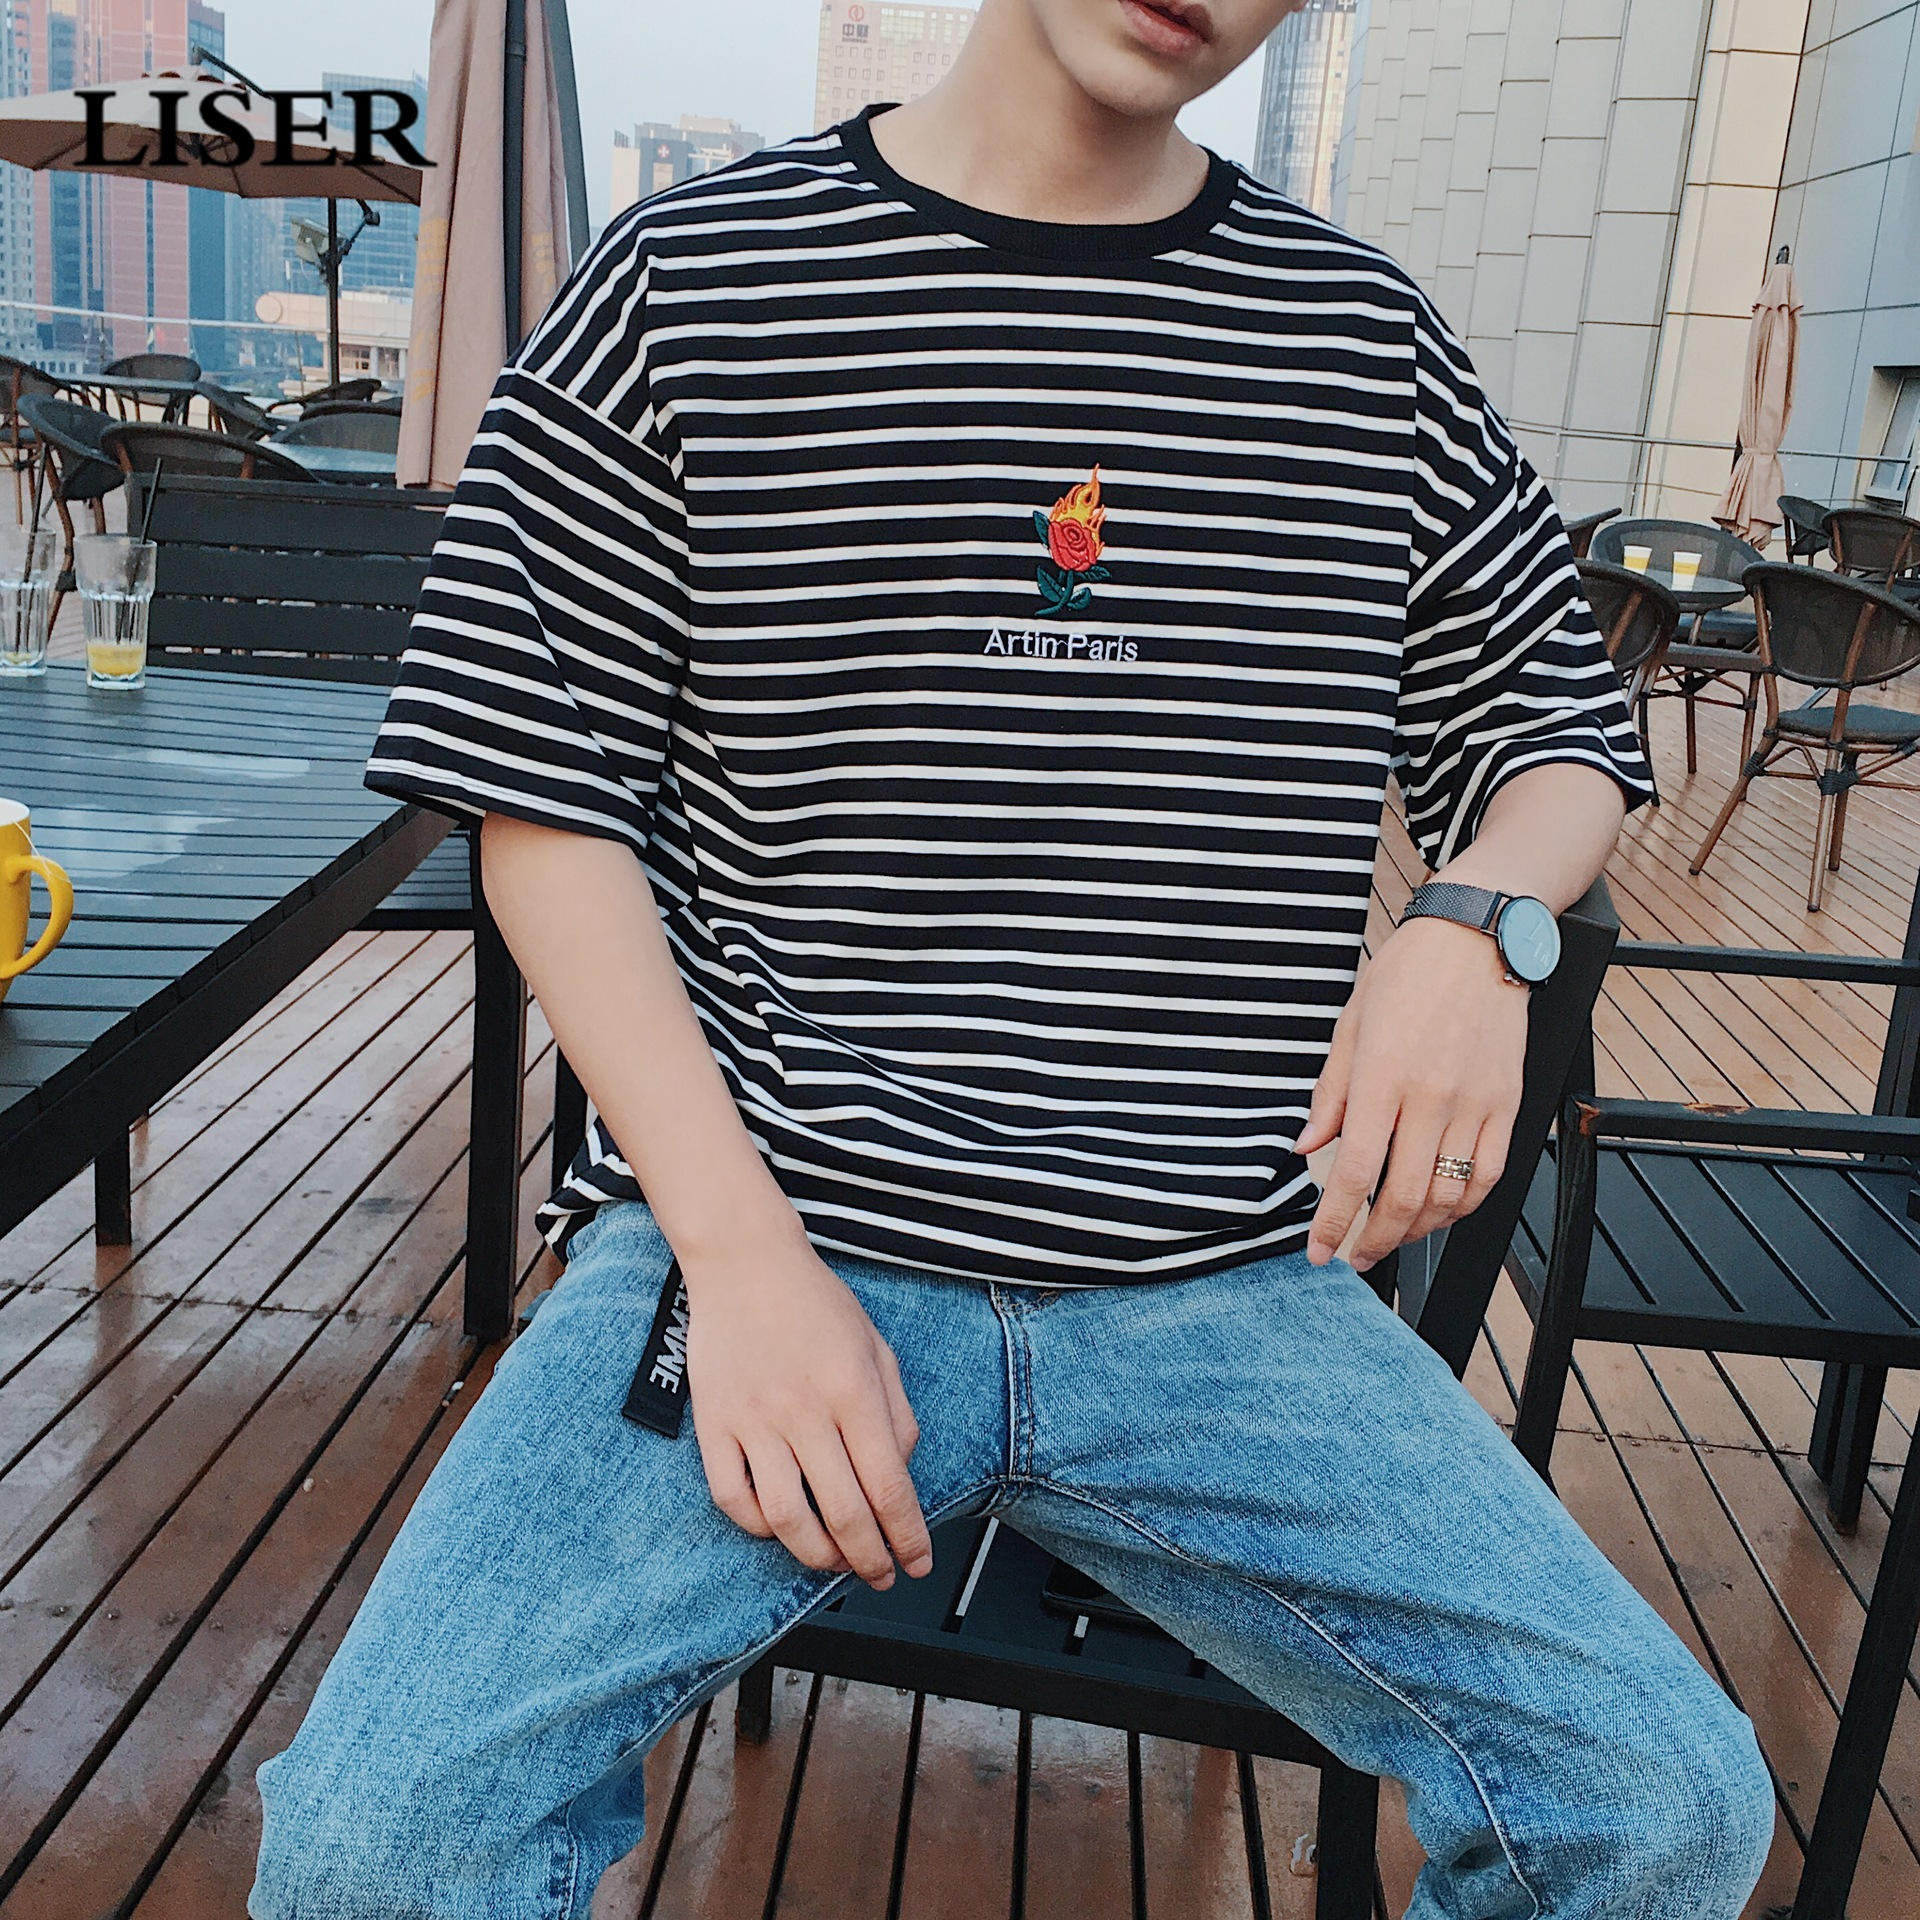 LISER 2019 Sports T-Shirt Summer Stripe Loose Cotton Rose Embroidery Tshirt Men Harajuku Streetwear Tshirts